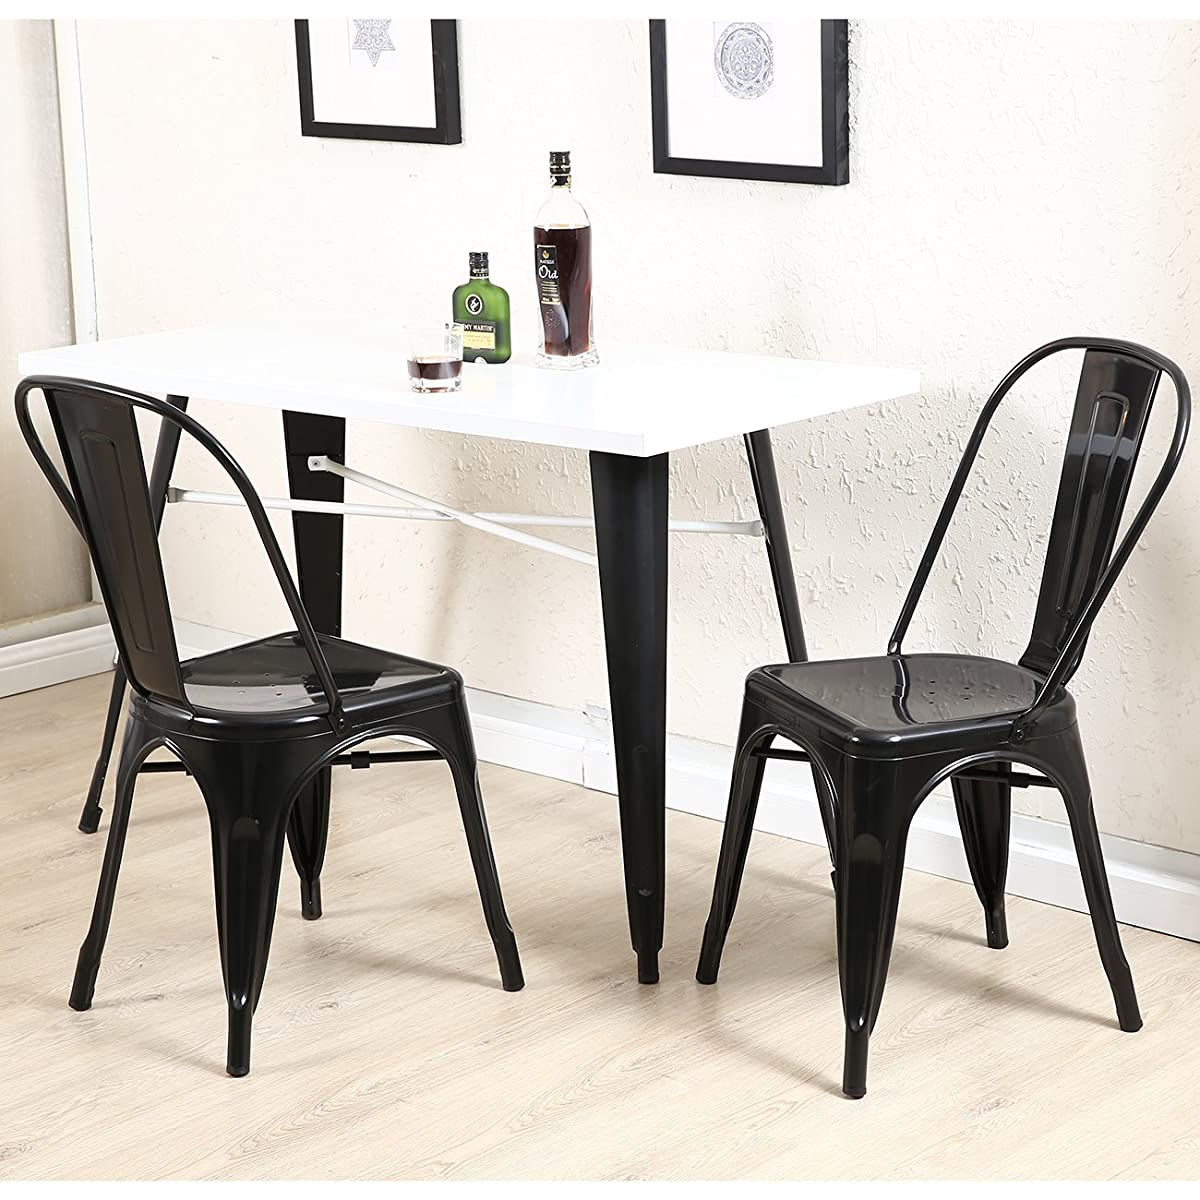 Belleze Set of (4) Vintage Style Dining Side Chairs Steel High Back (Black)